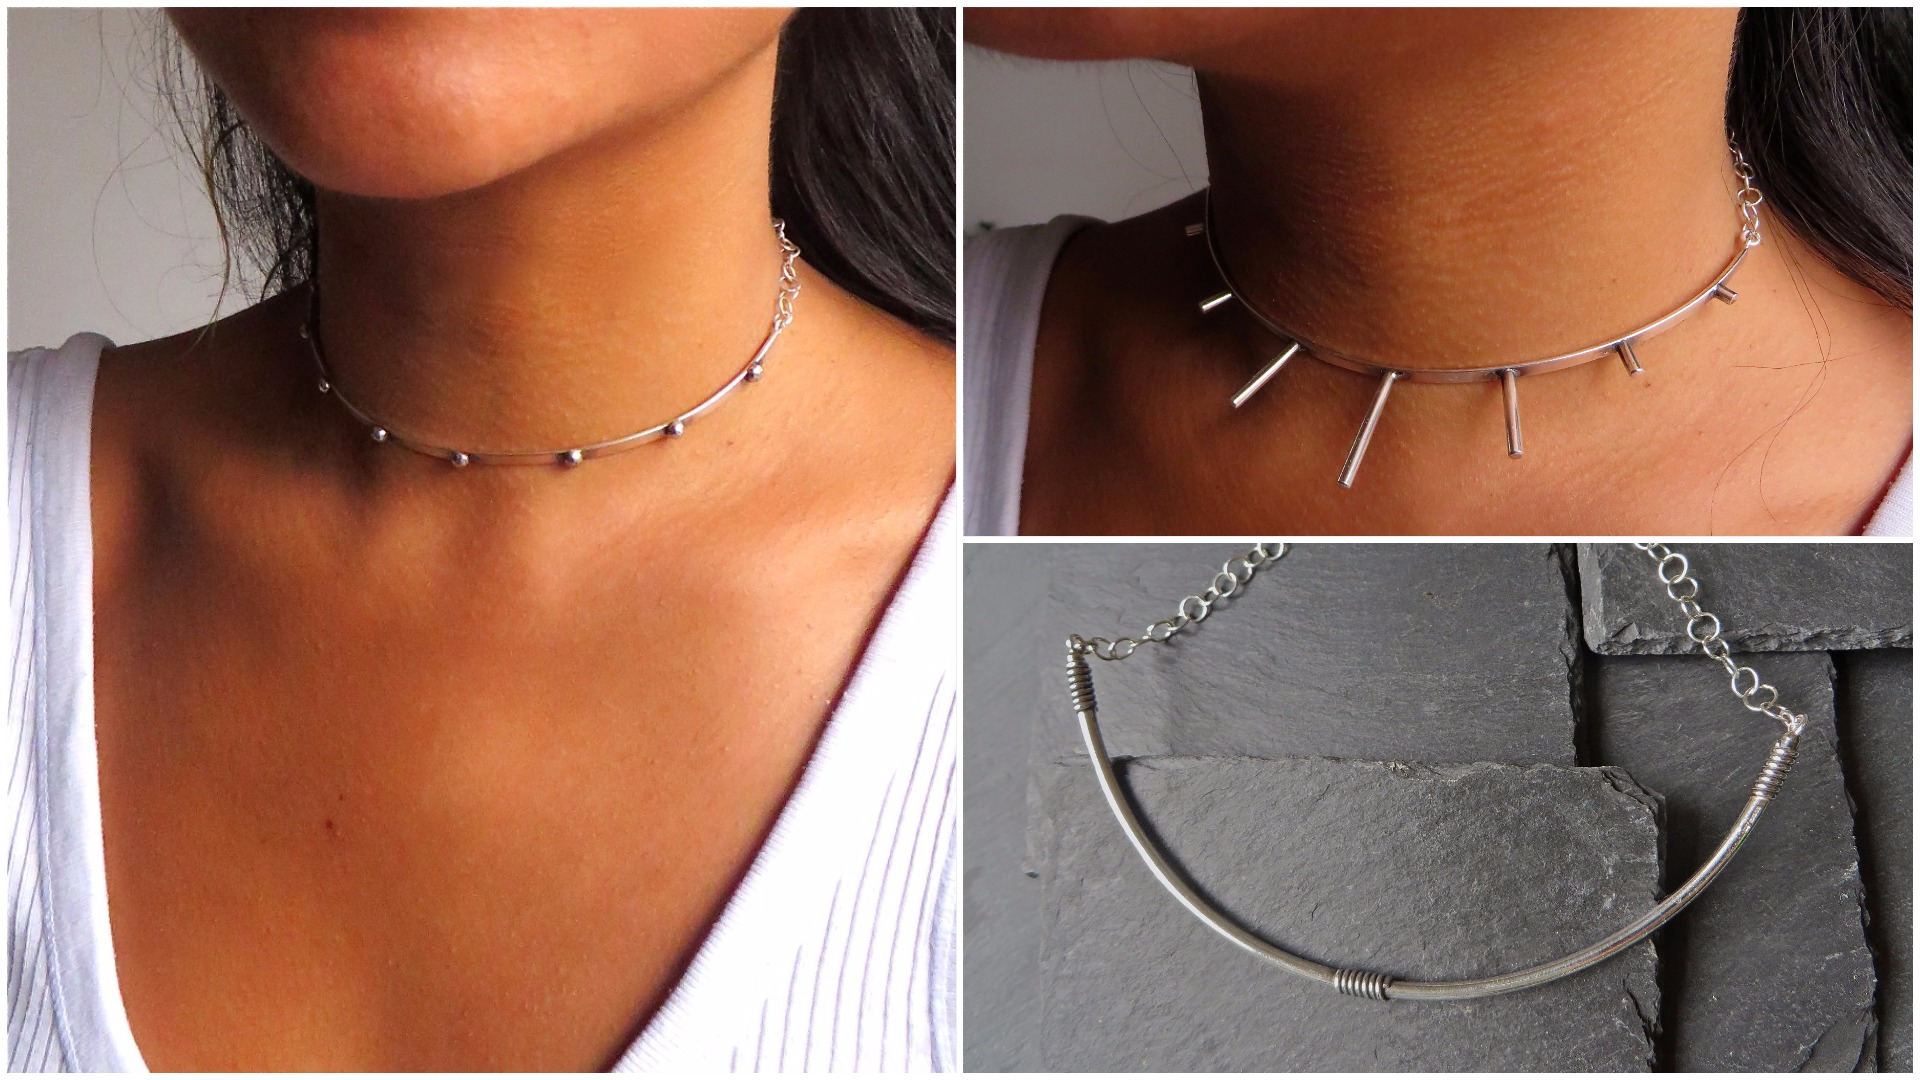 The  Silver Studded Punk Choker  has a delicate strength. The  Silver Punk Sunshine Choker  is elegantly fierce and the  Silver Wrap Choker  is a sexy classic.